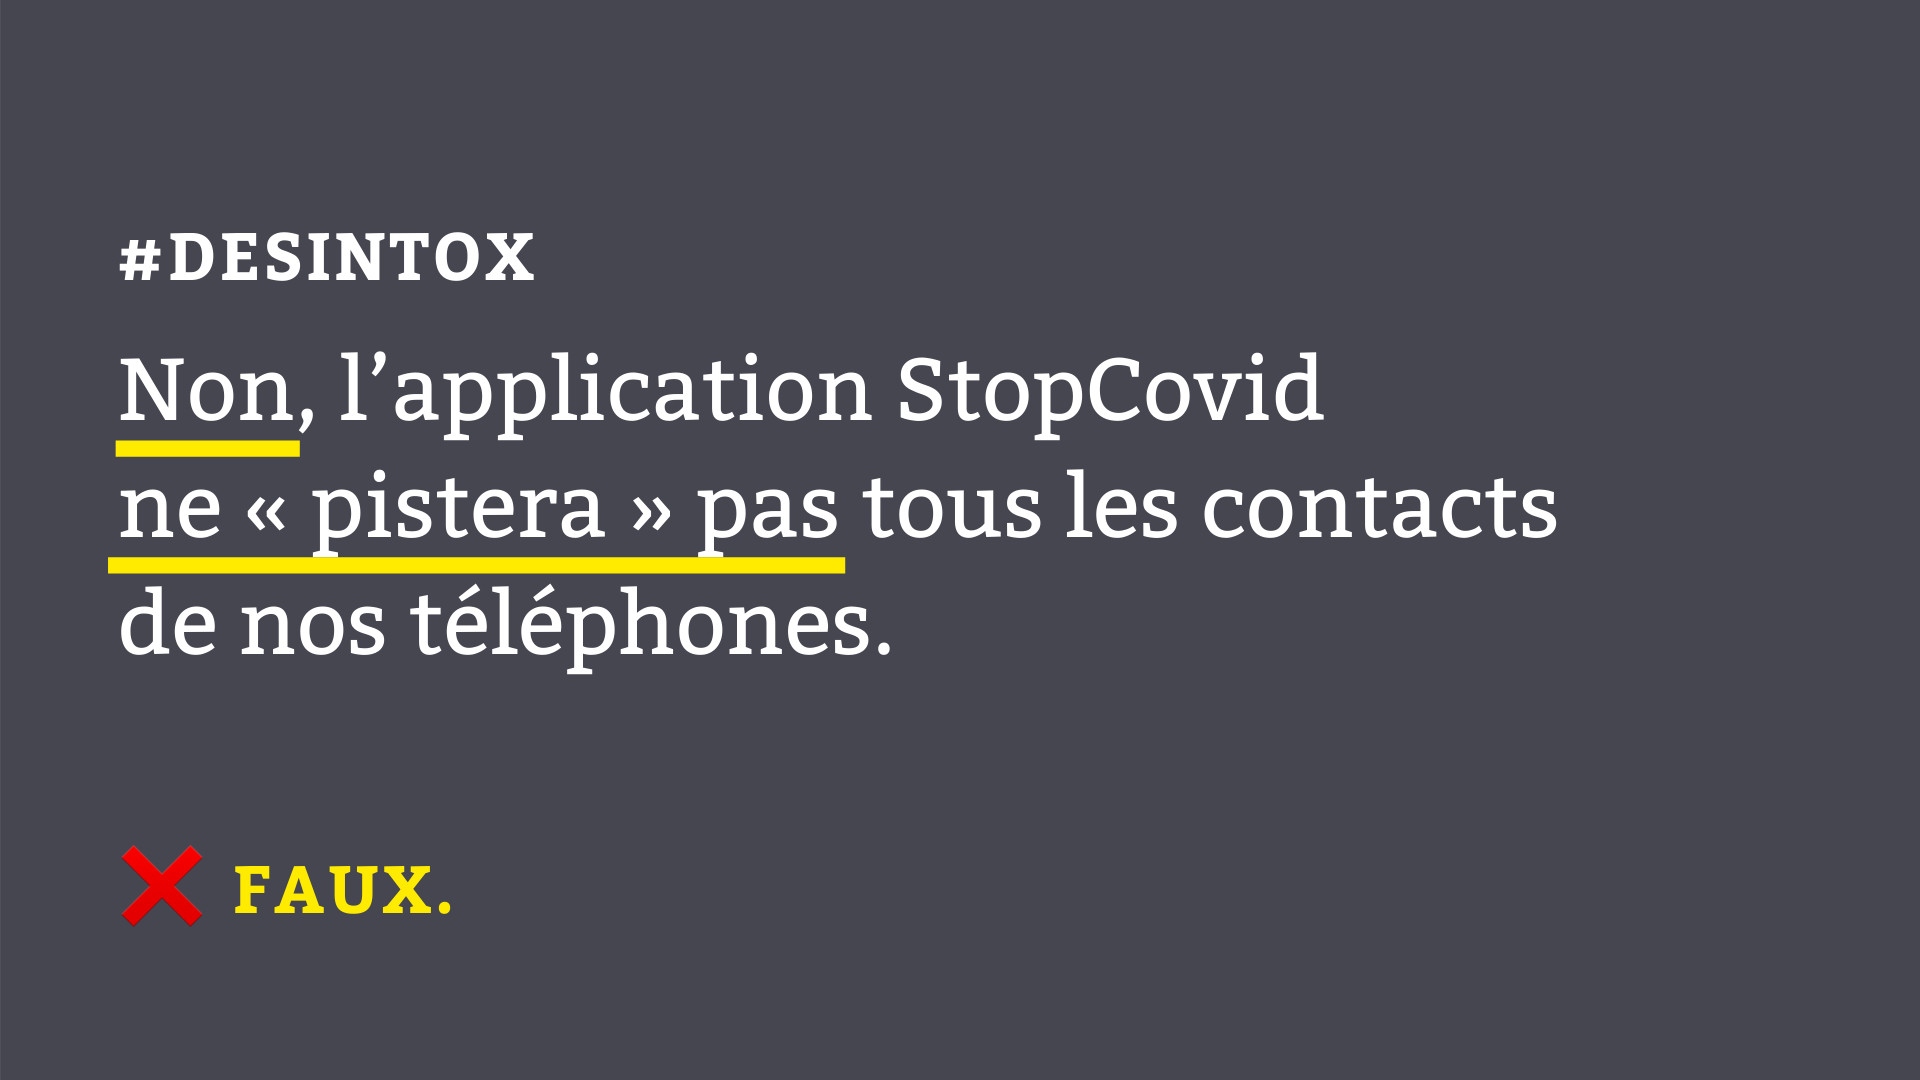 application-stopcovid-pister-telephones